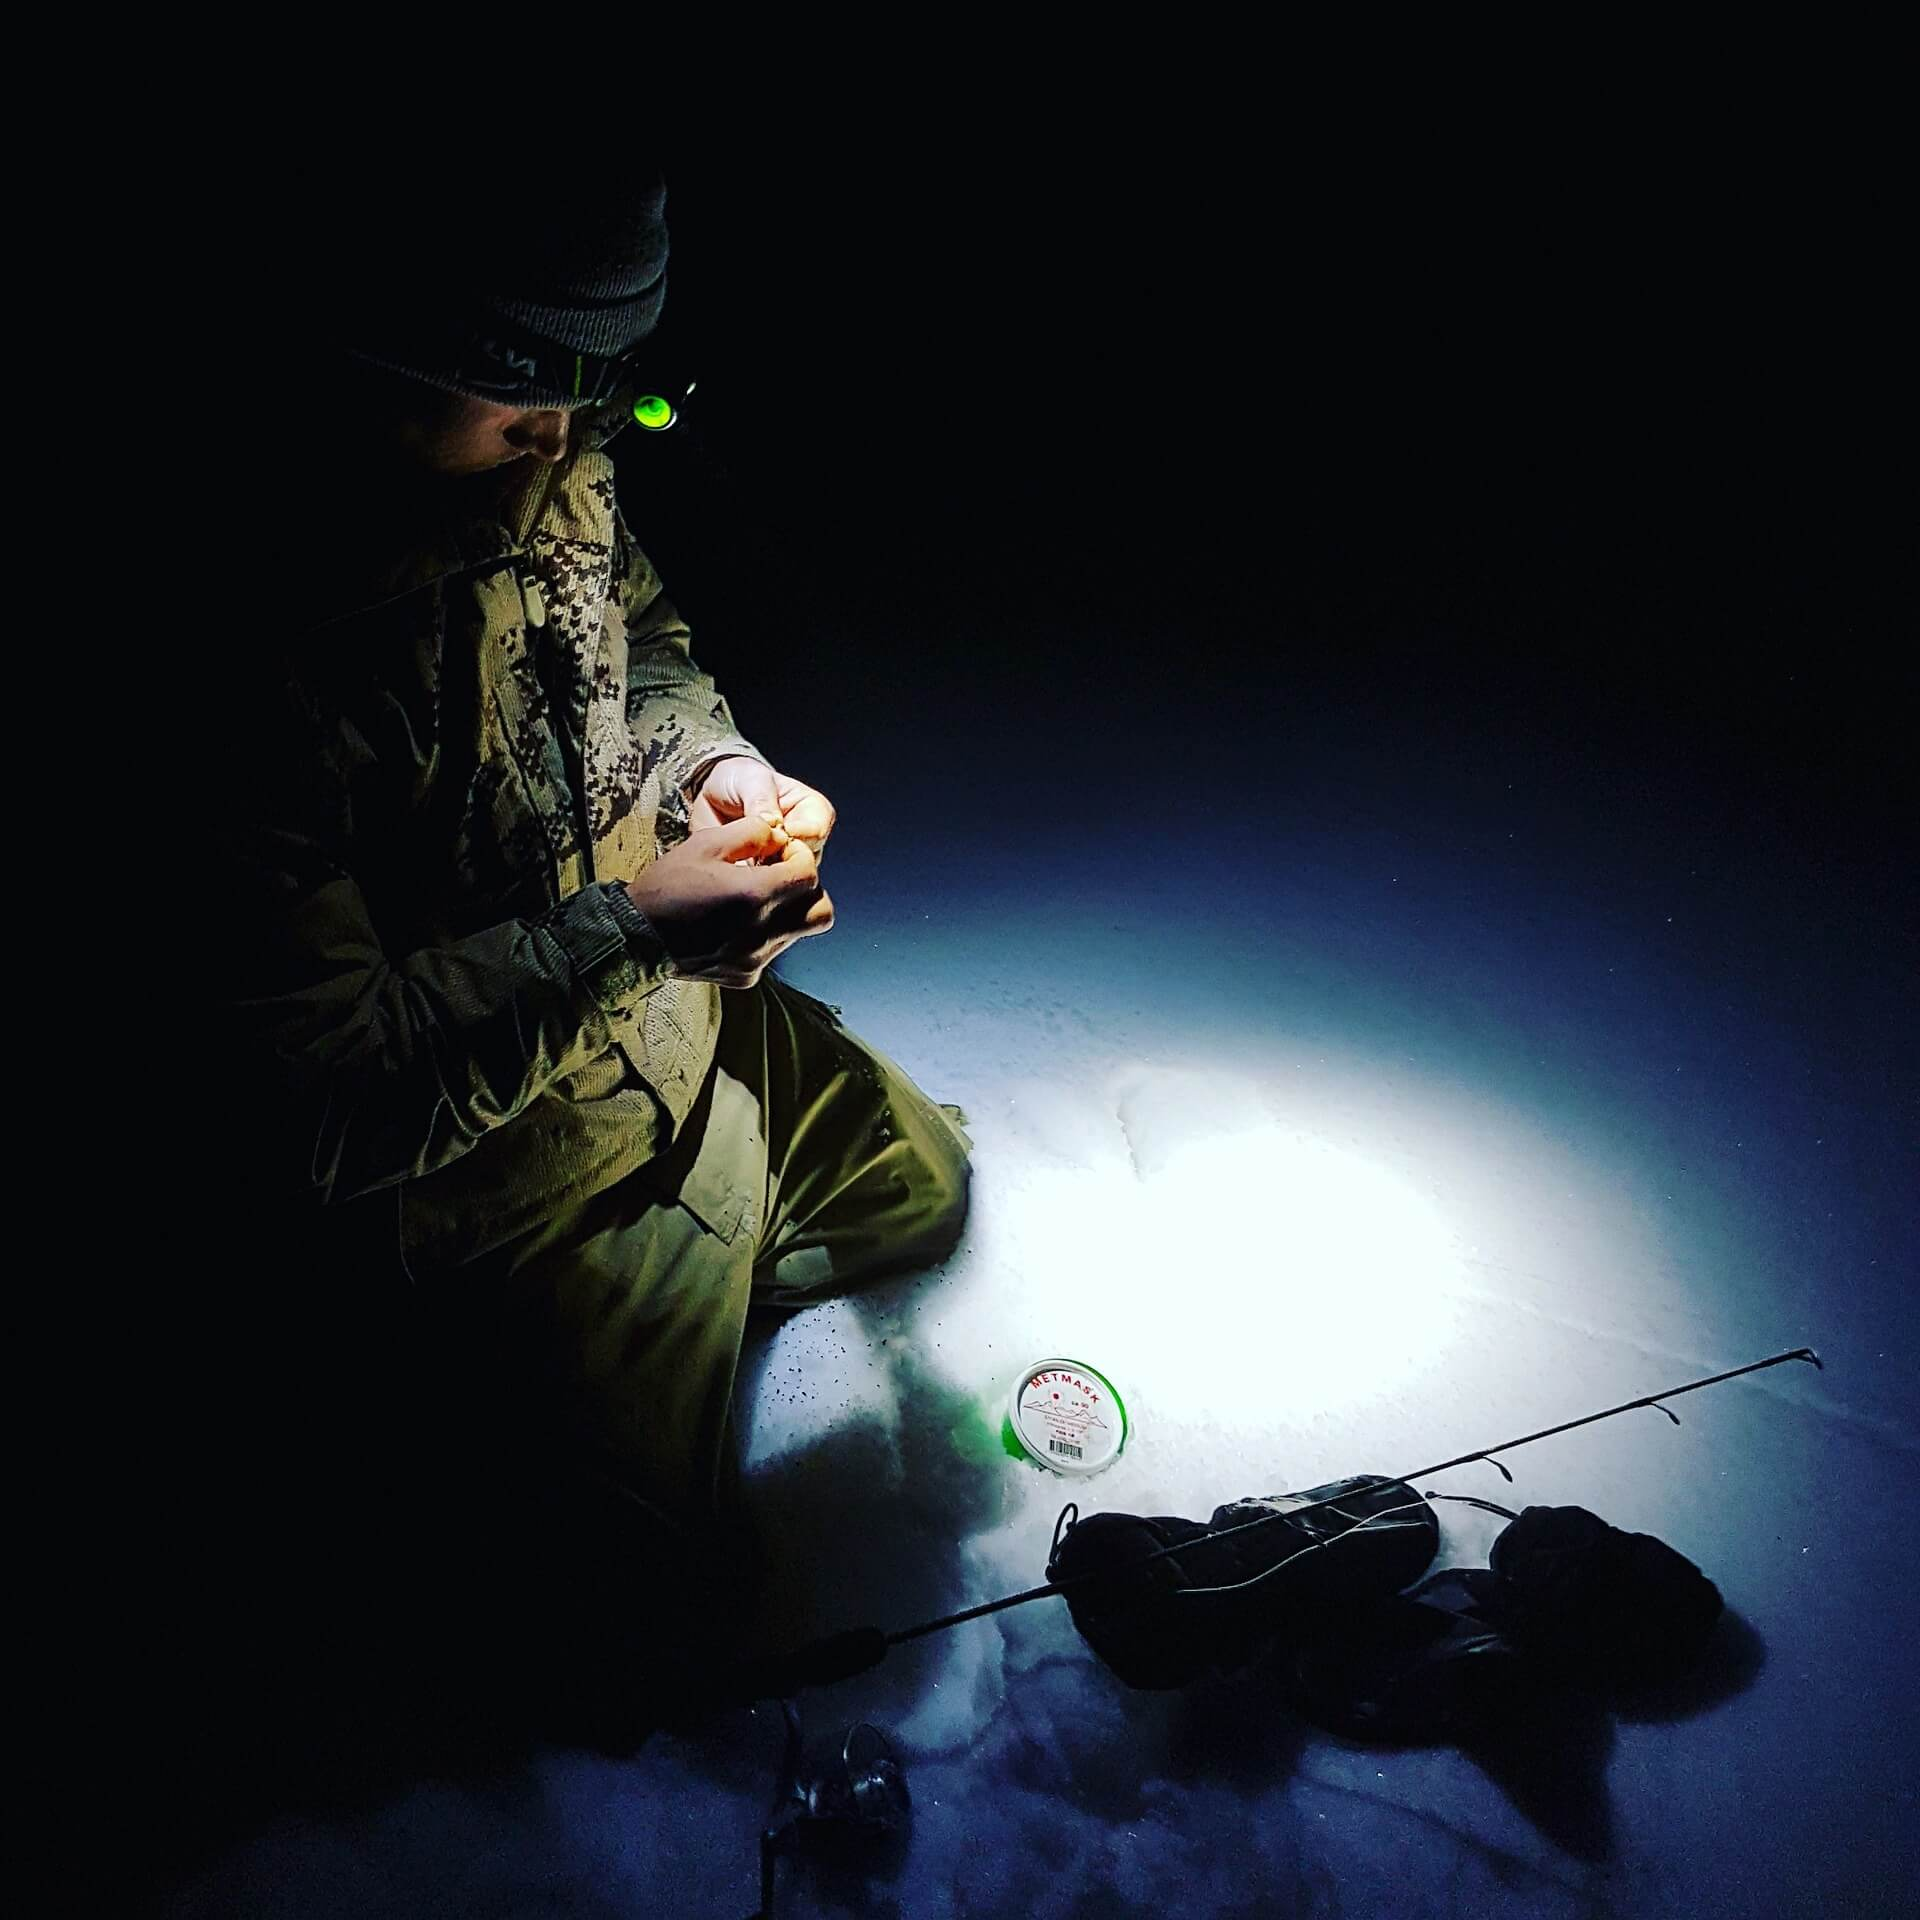 Person wearing best headlamp for fishing at night preparing to Ice Fish